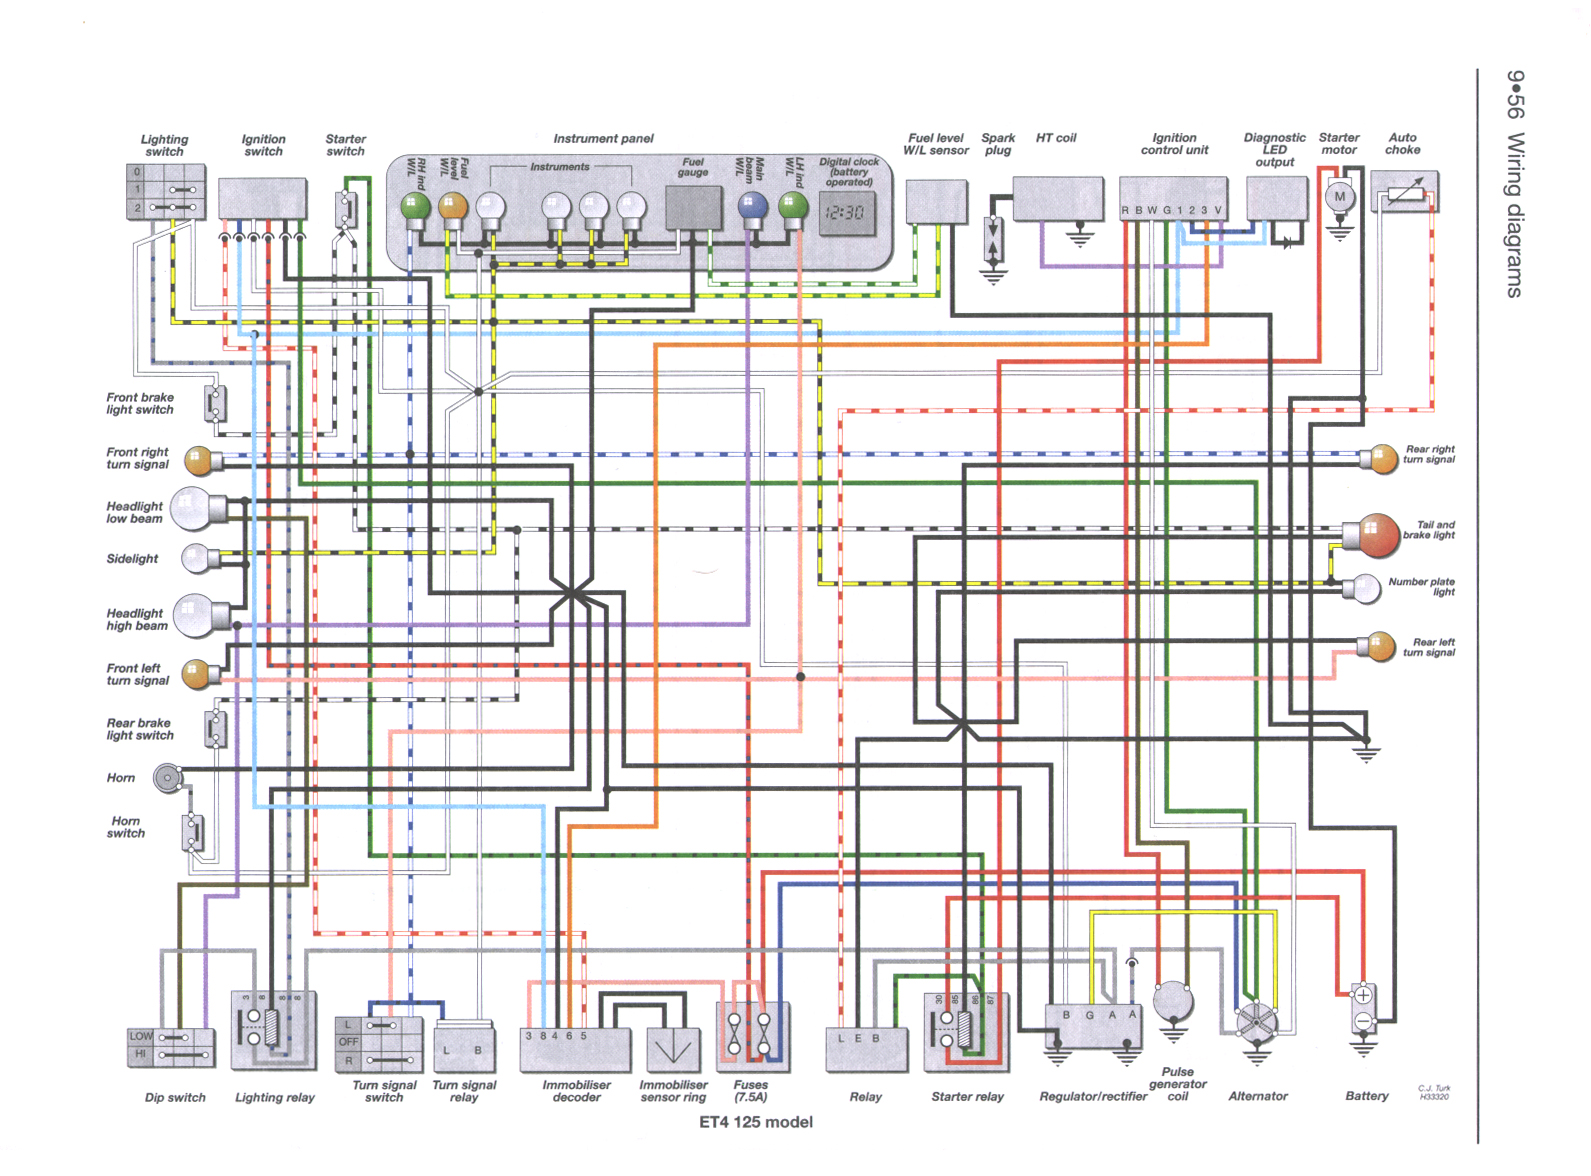 index of manuals circuits rh vespaforum com 50Cc Scooter Wiring Diagram Electric Scooter Wiring Diagrams